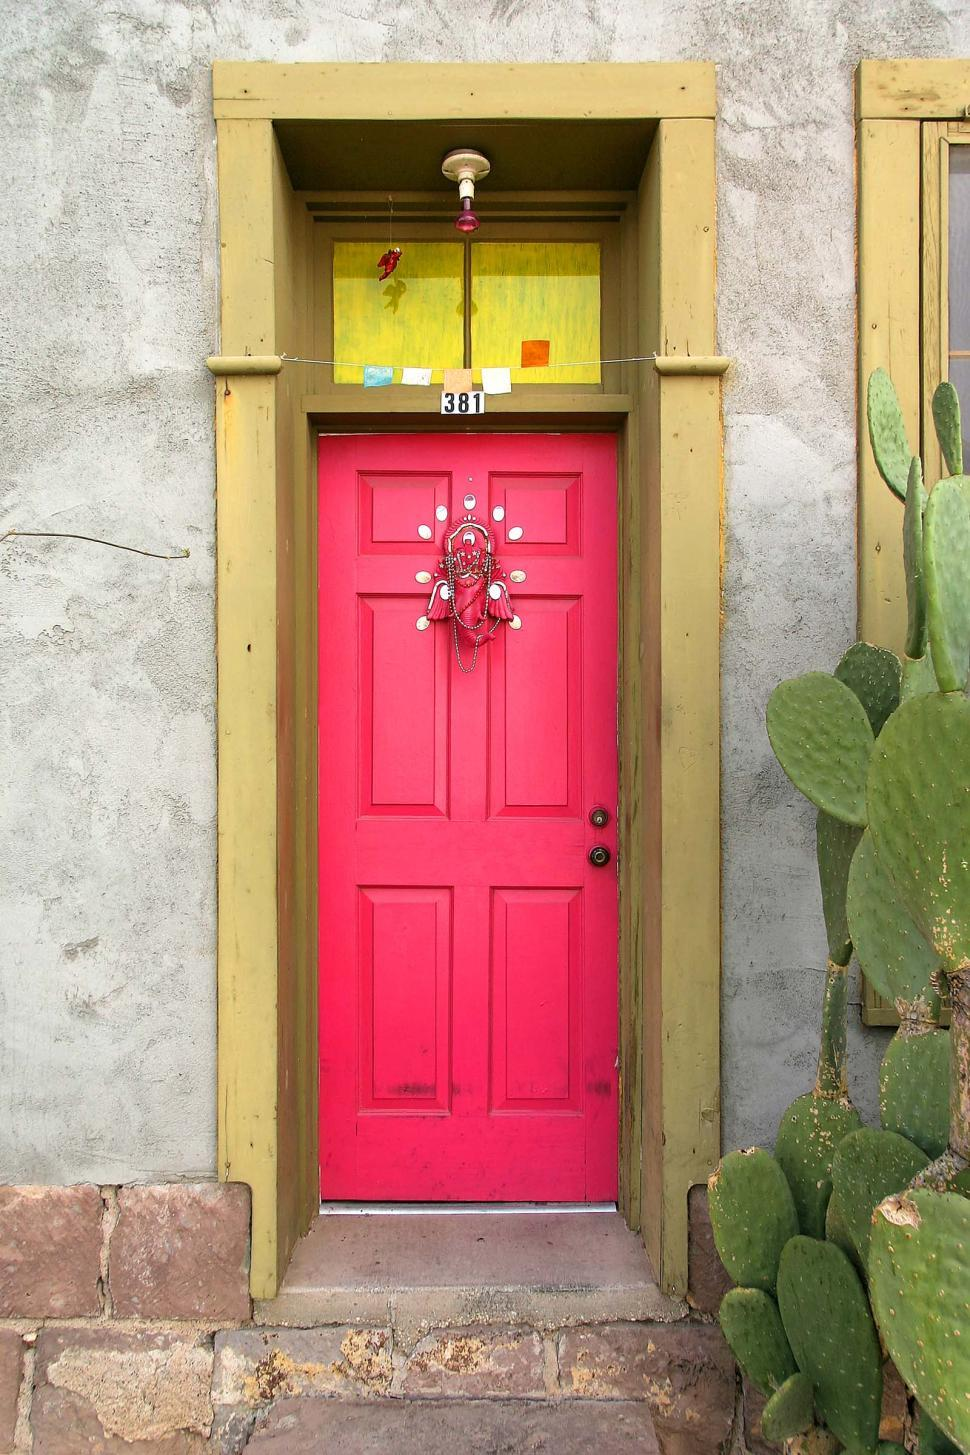 Download Free Stock HD Photo of Colorful pink doorway Online